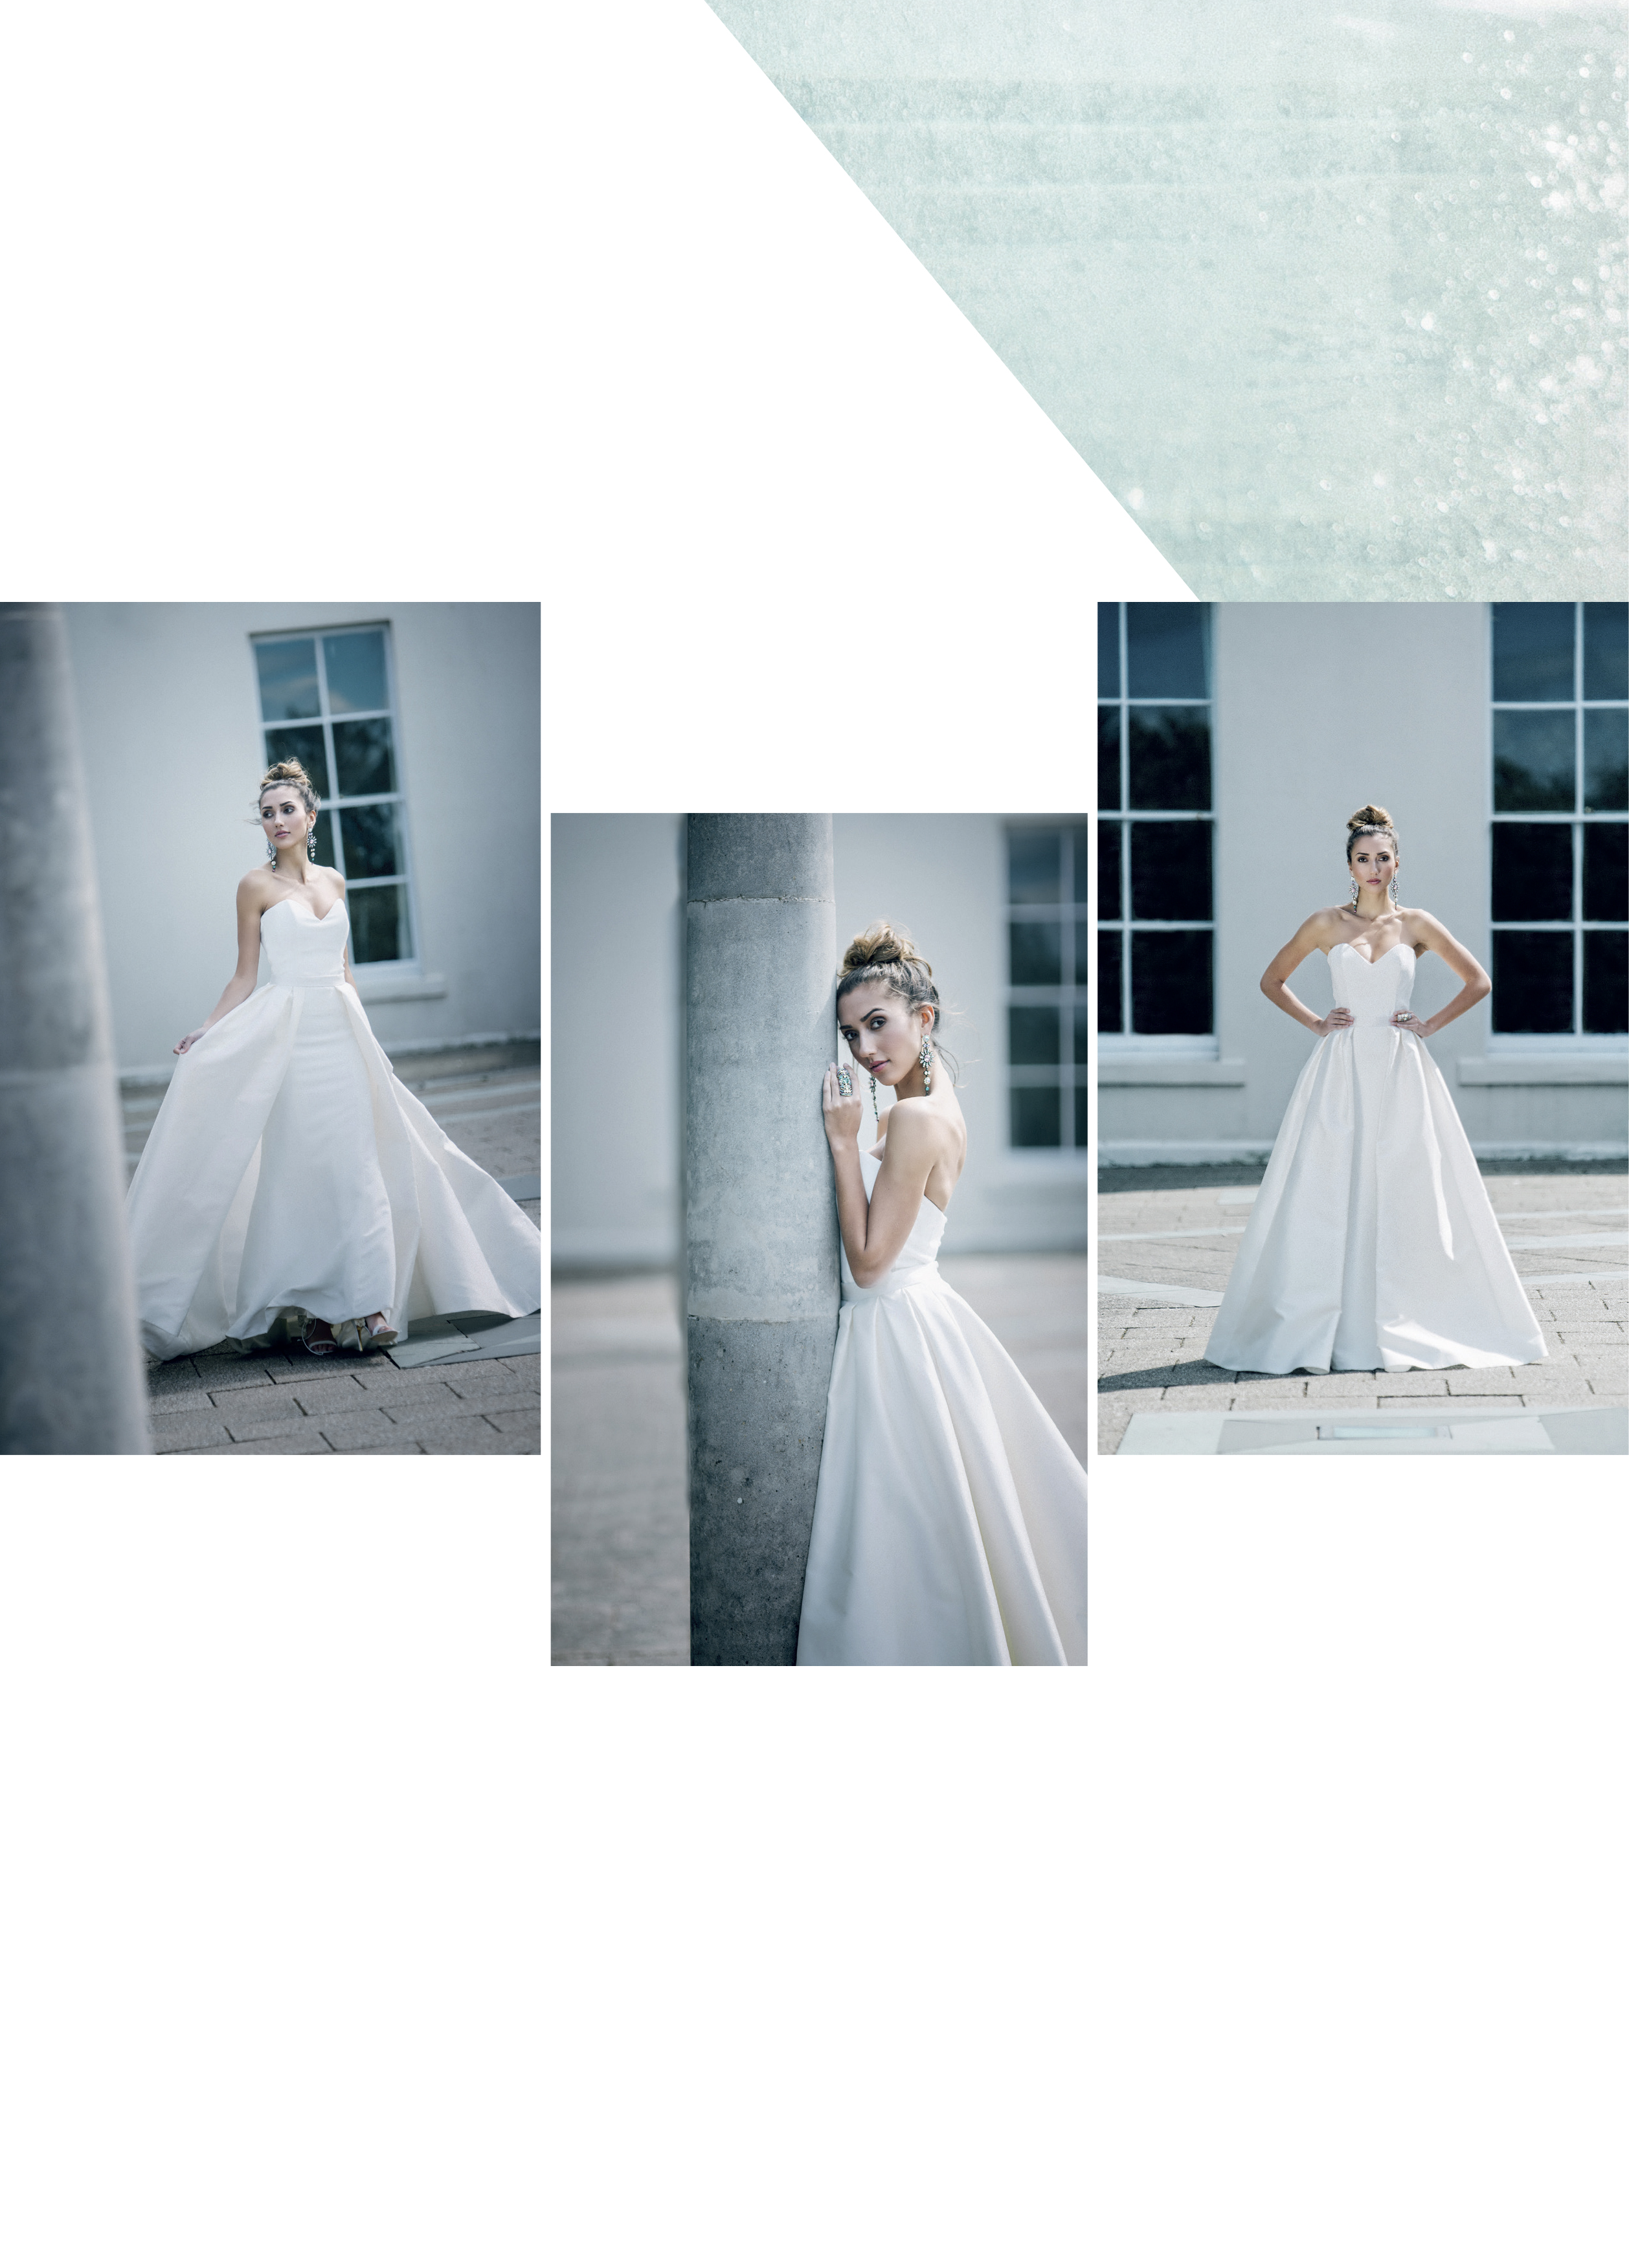 Simplicity designer wedding dress by Caroline Castigliano